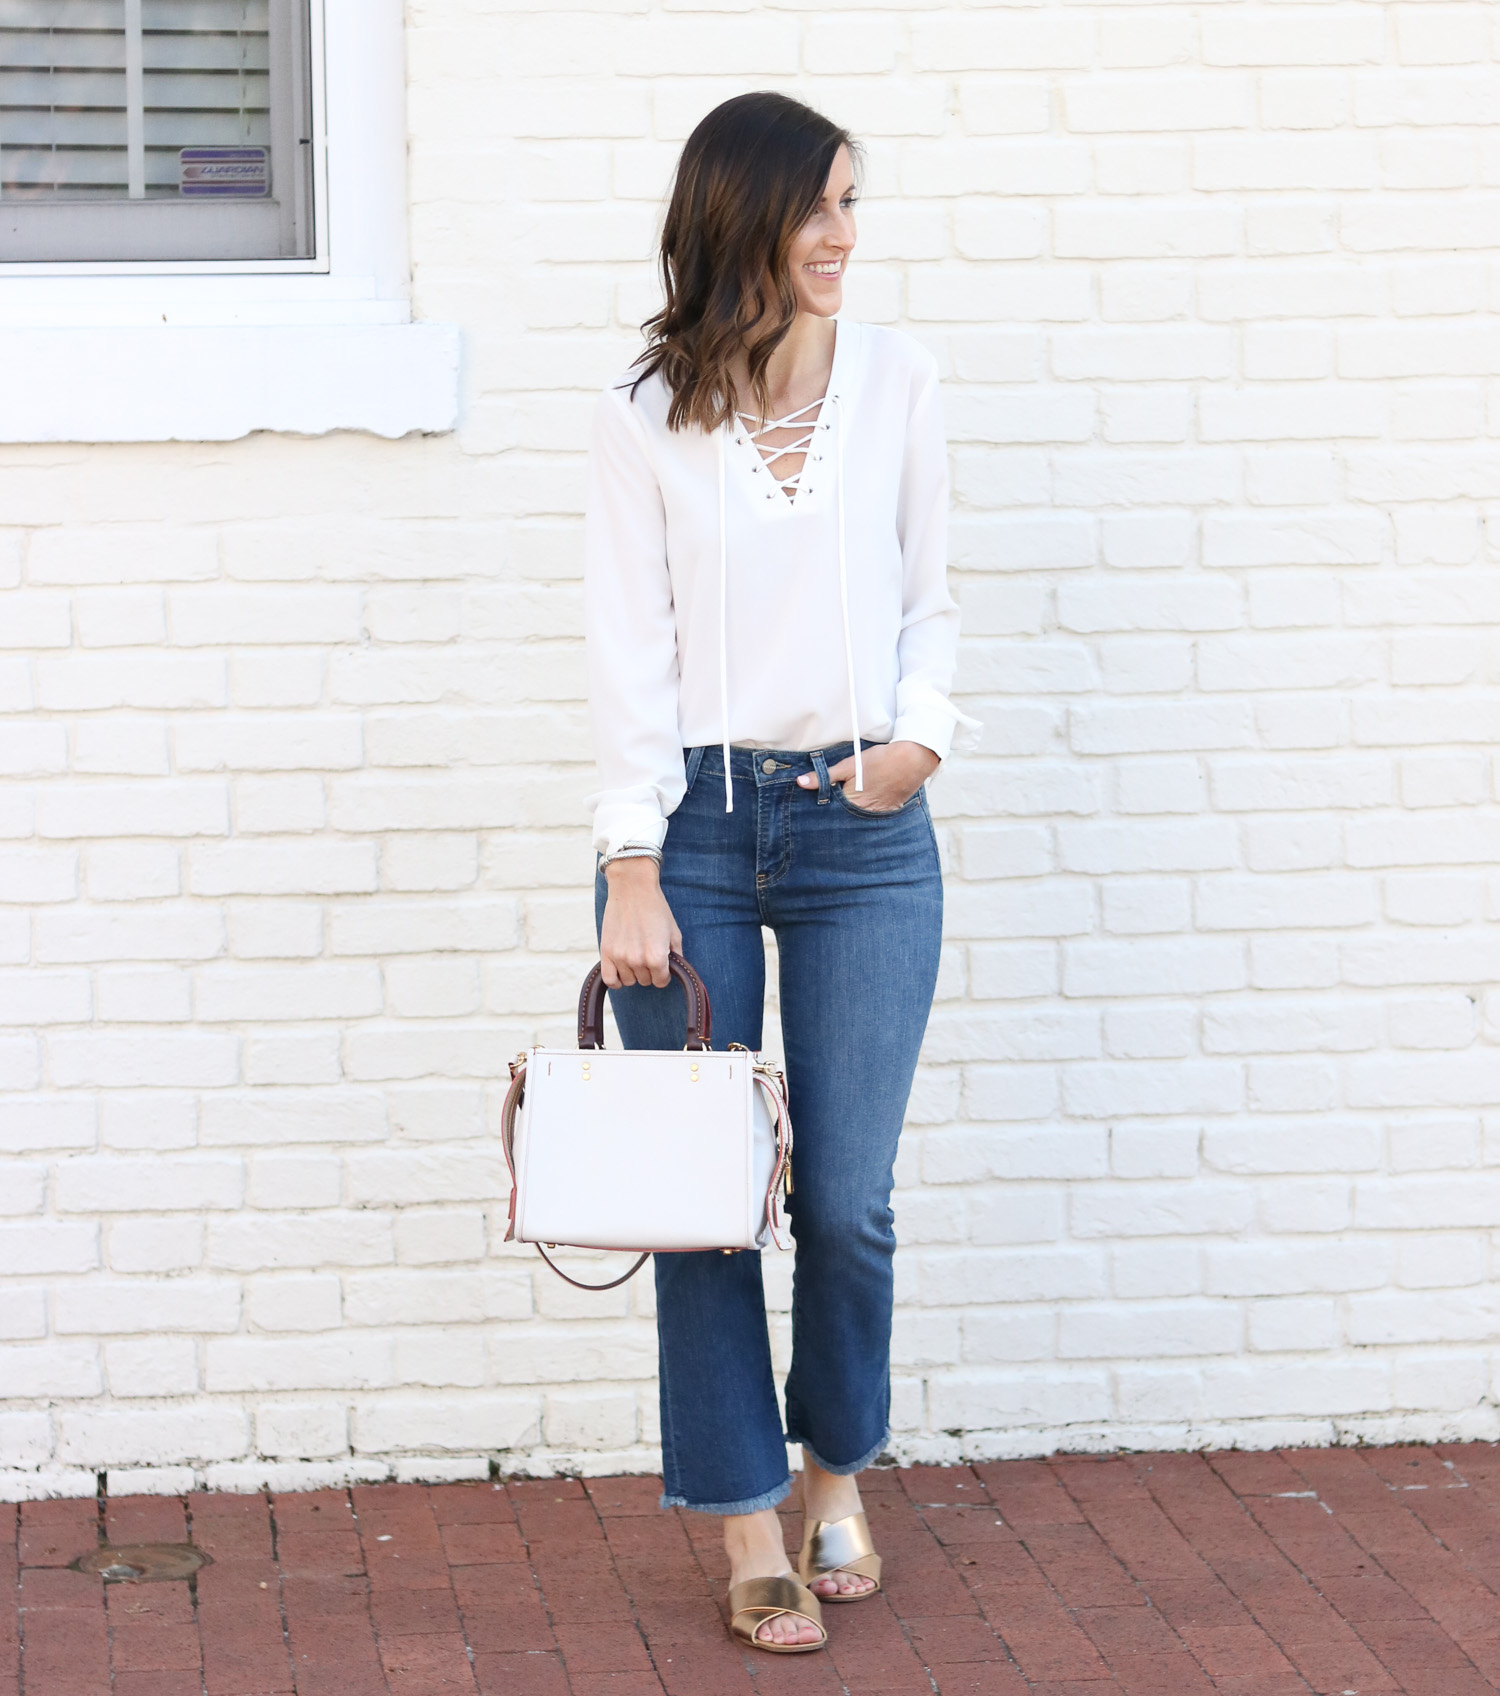 Cropped Flare Denim - Lace Up Top - 70s Inspired Style @cobaltchronicle